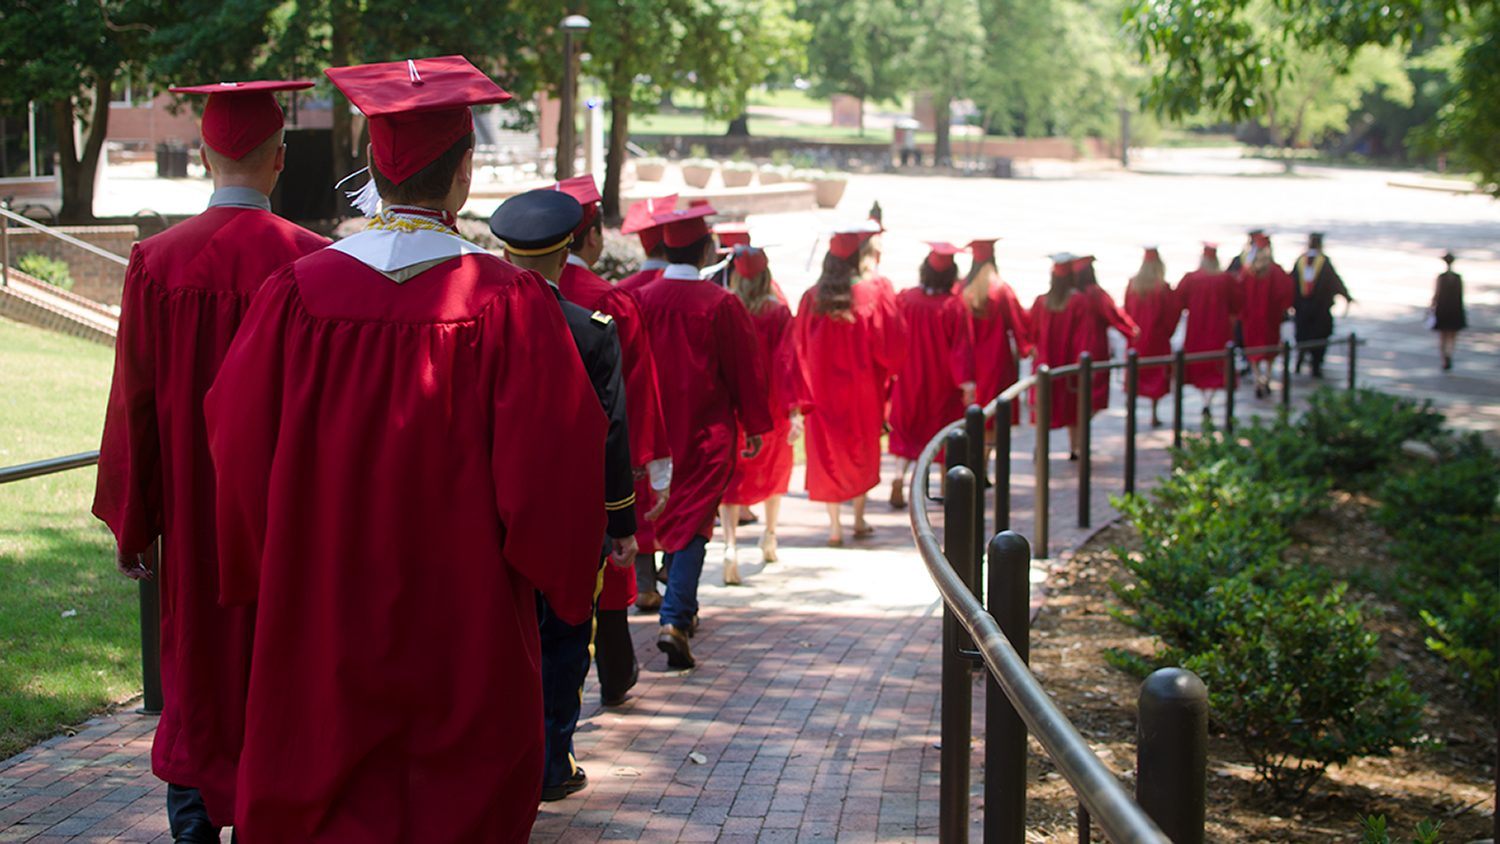 Spring 2018 graduates walking down brickyard ramp